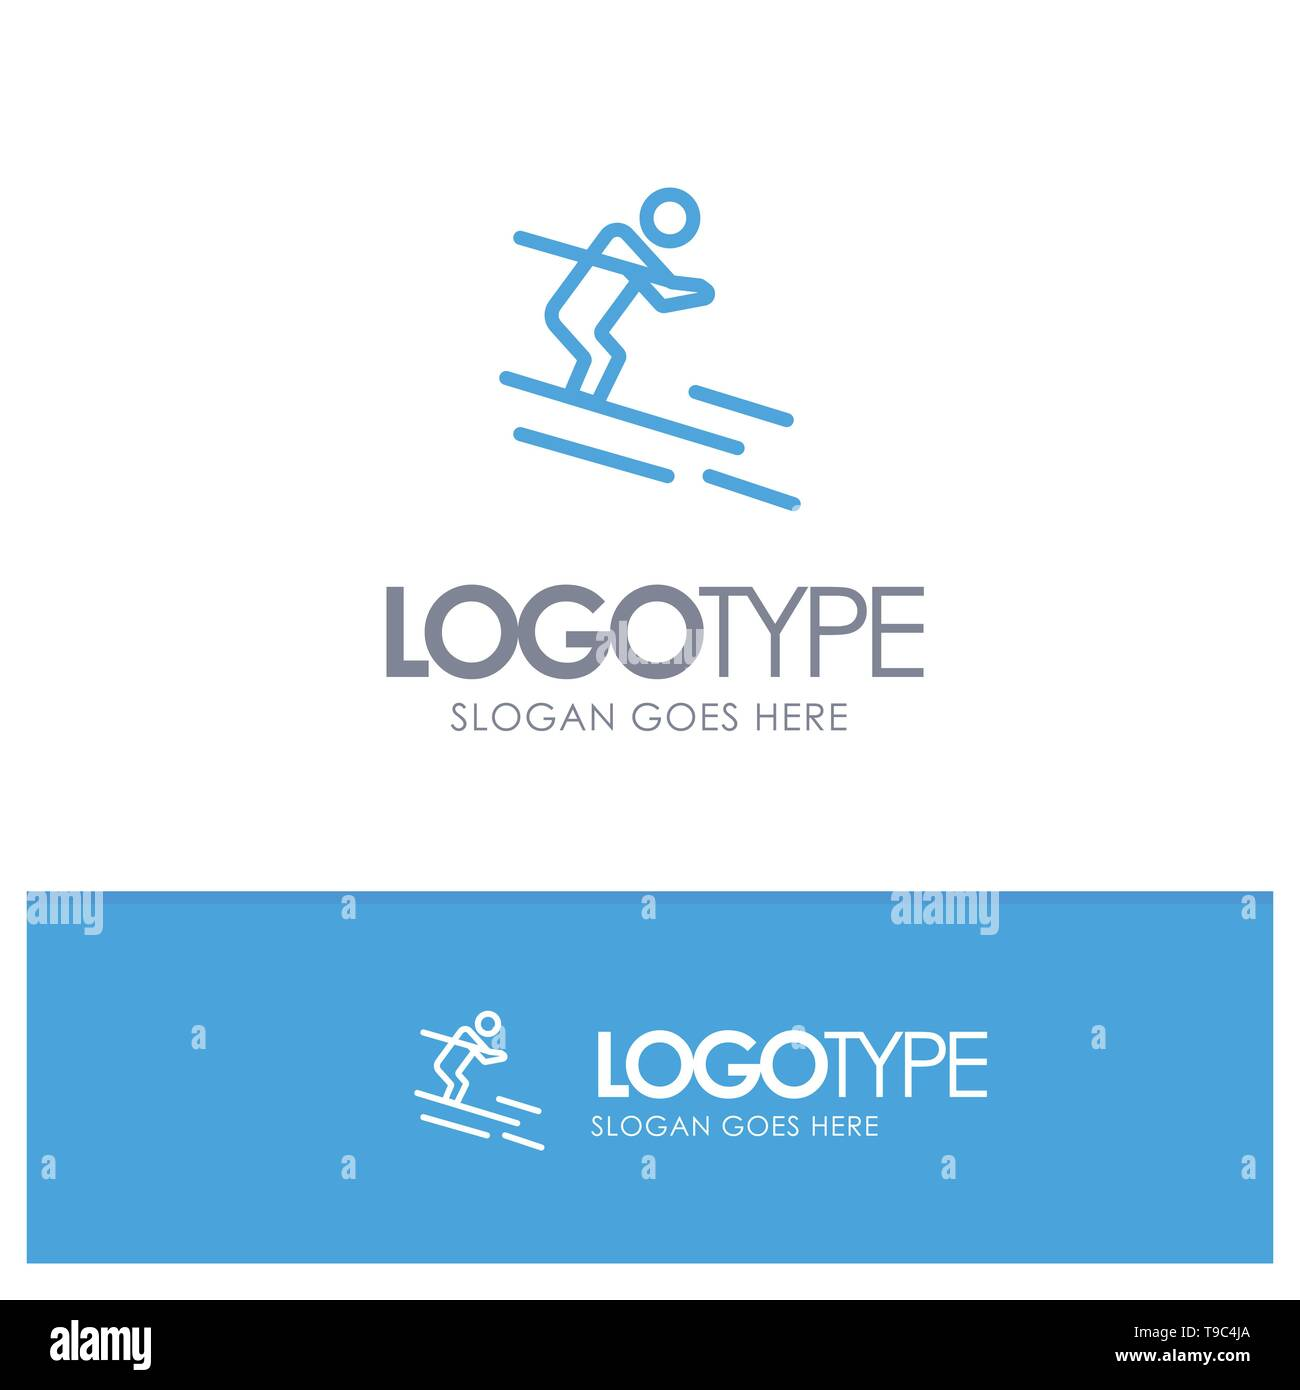 Activity, Ski, Skiing, Sportsman Blue outLine Logo with place for tagline - Stock Image